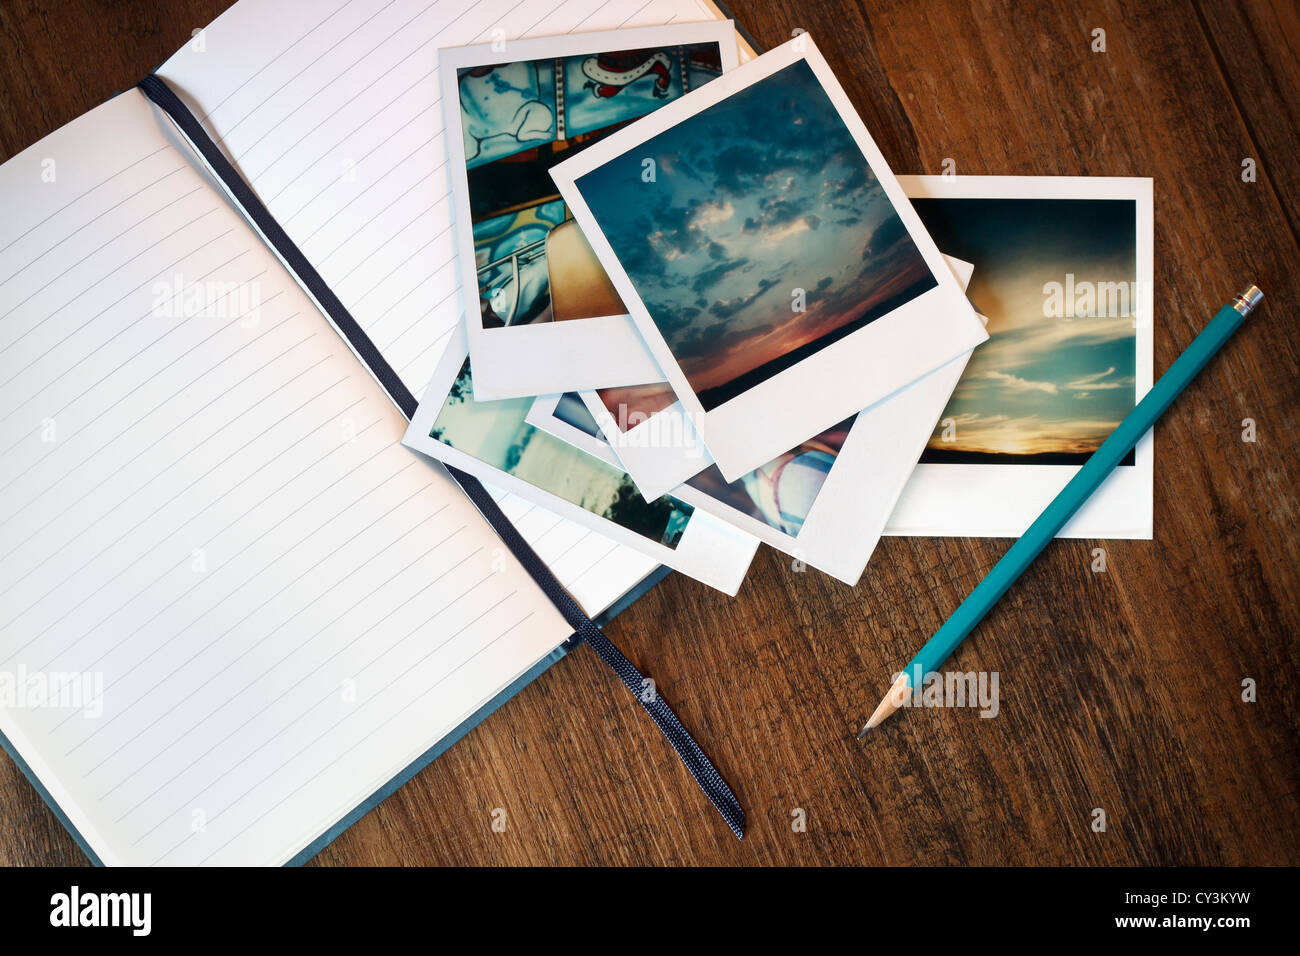 Vintage polaroid pictures, an open journal and pencil. - Stock Image